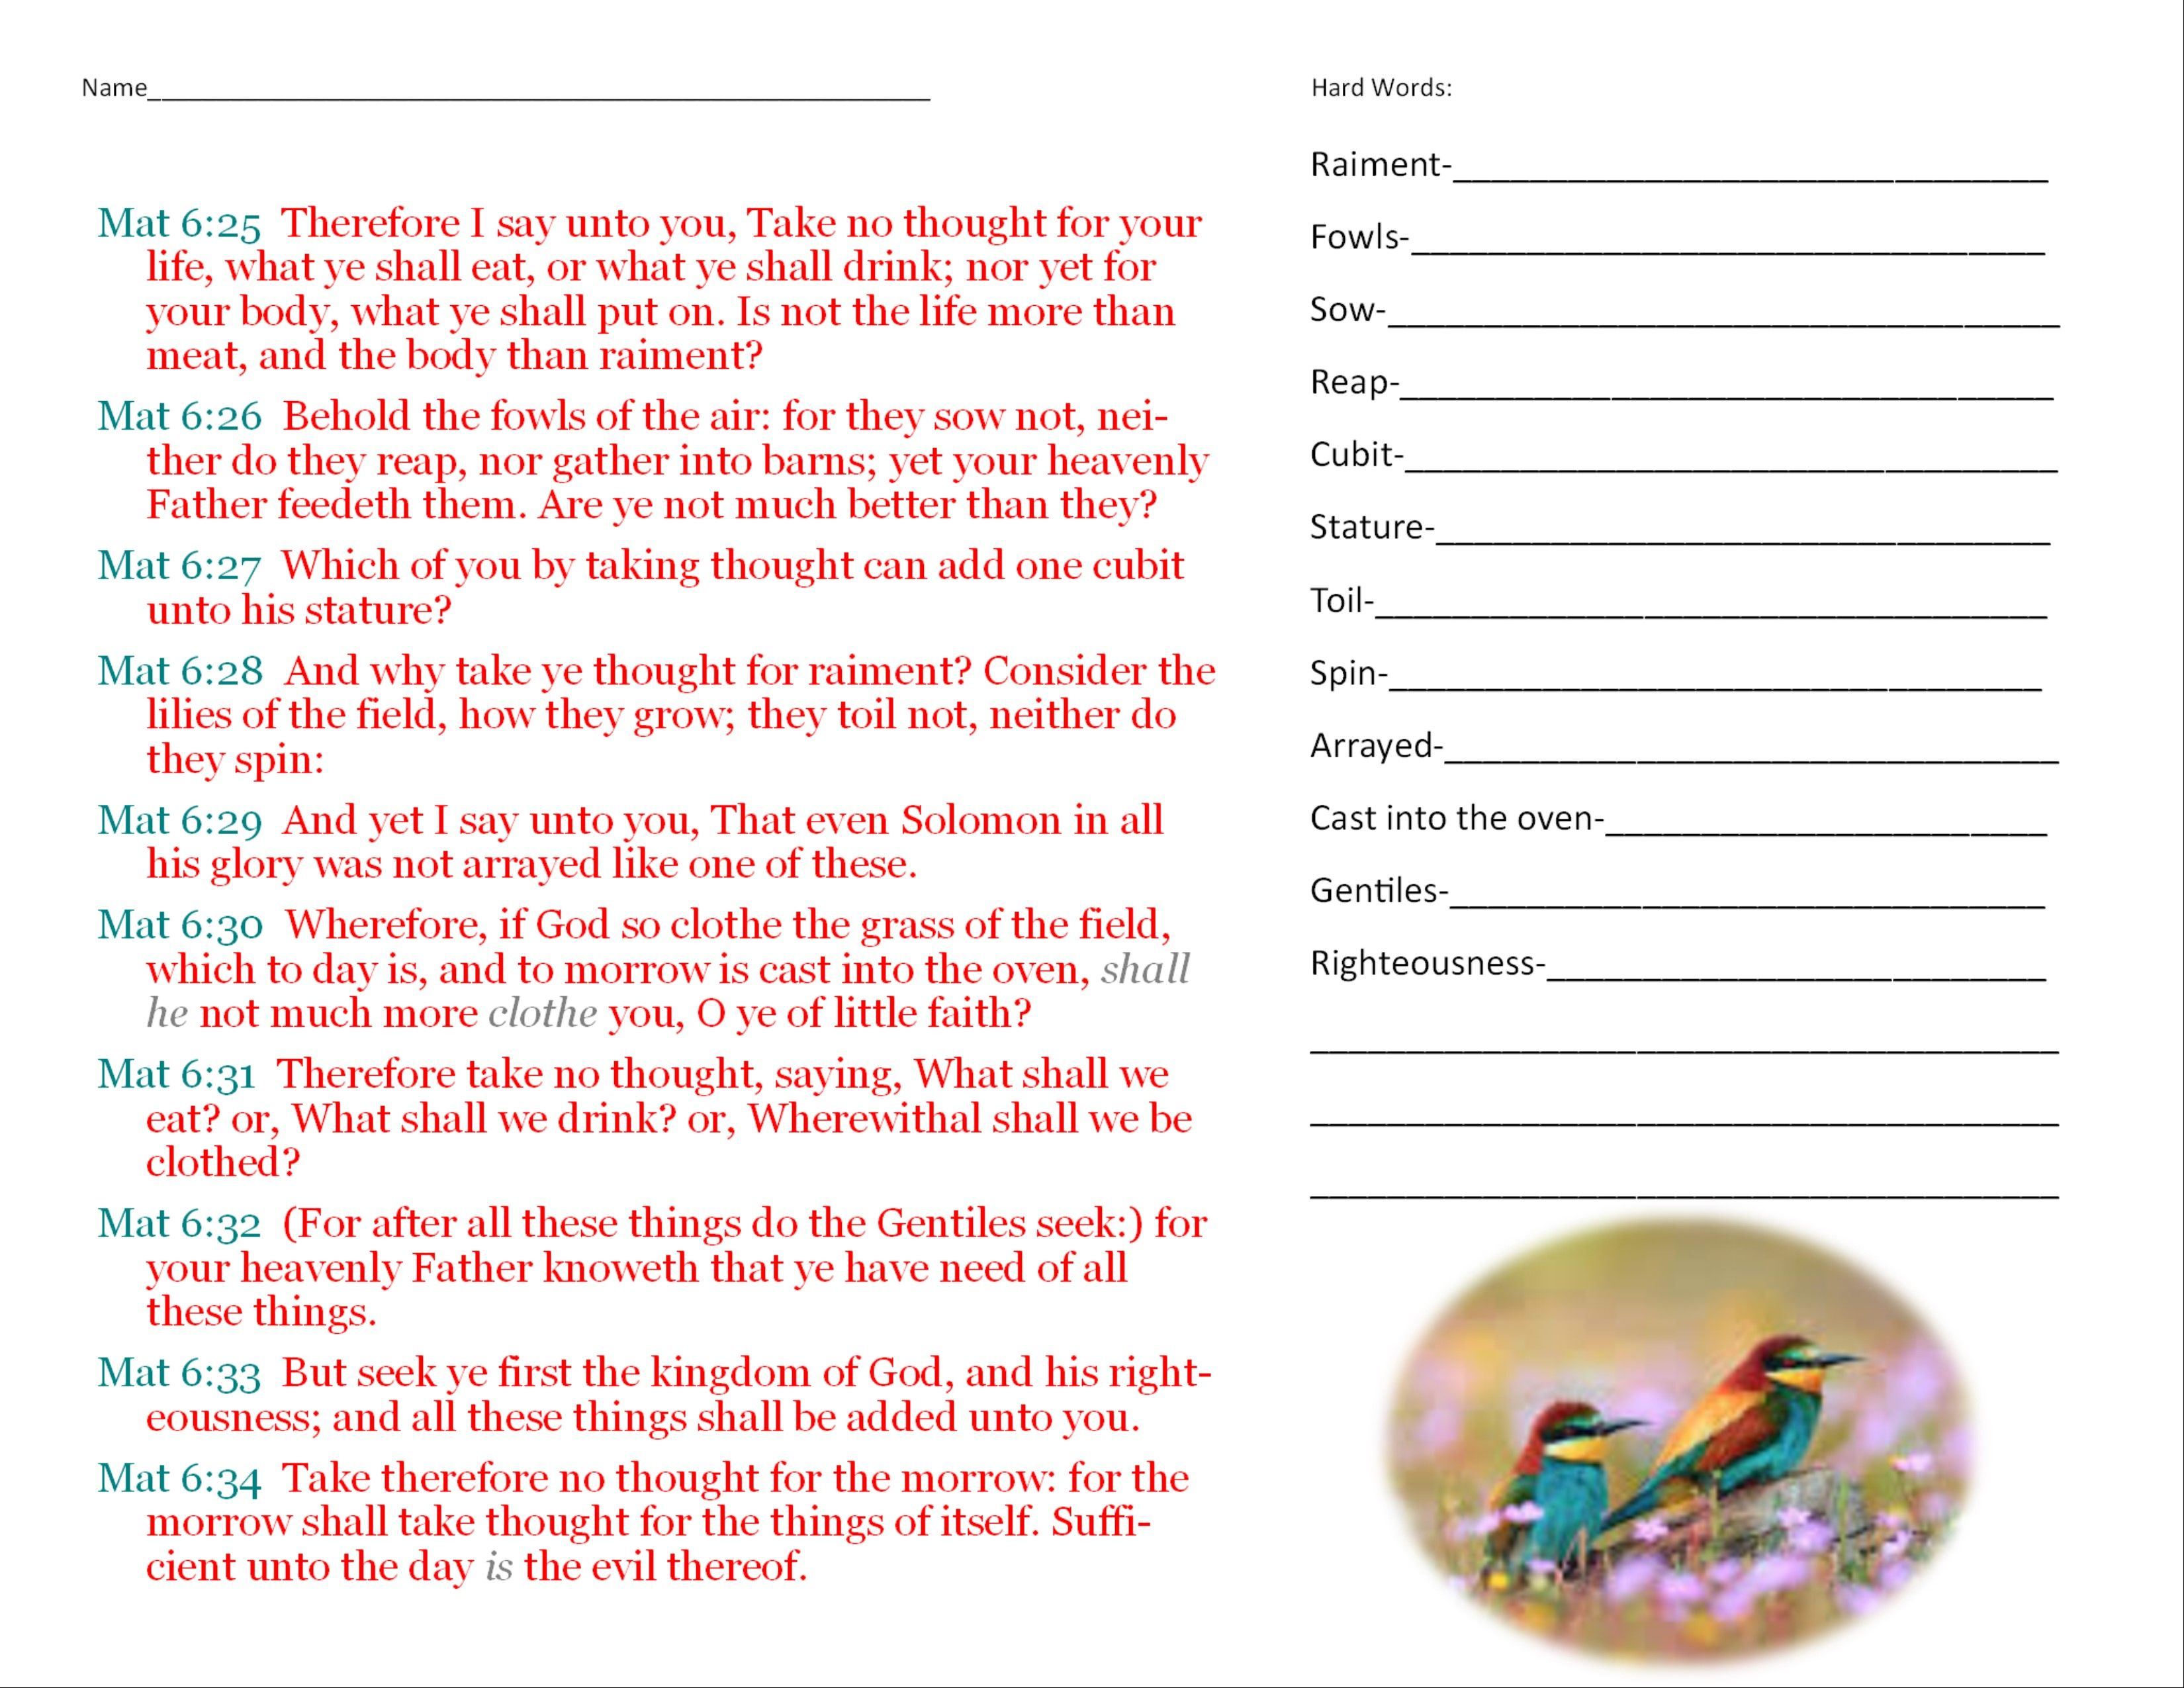 This Is A Worksheet For A Lesson On Matthew 6 25 34 It Has The